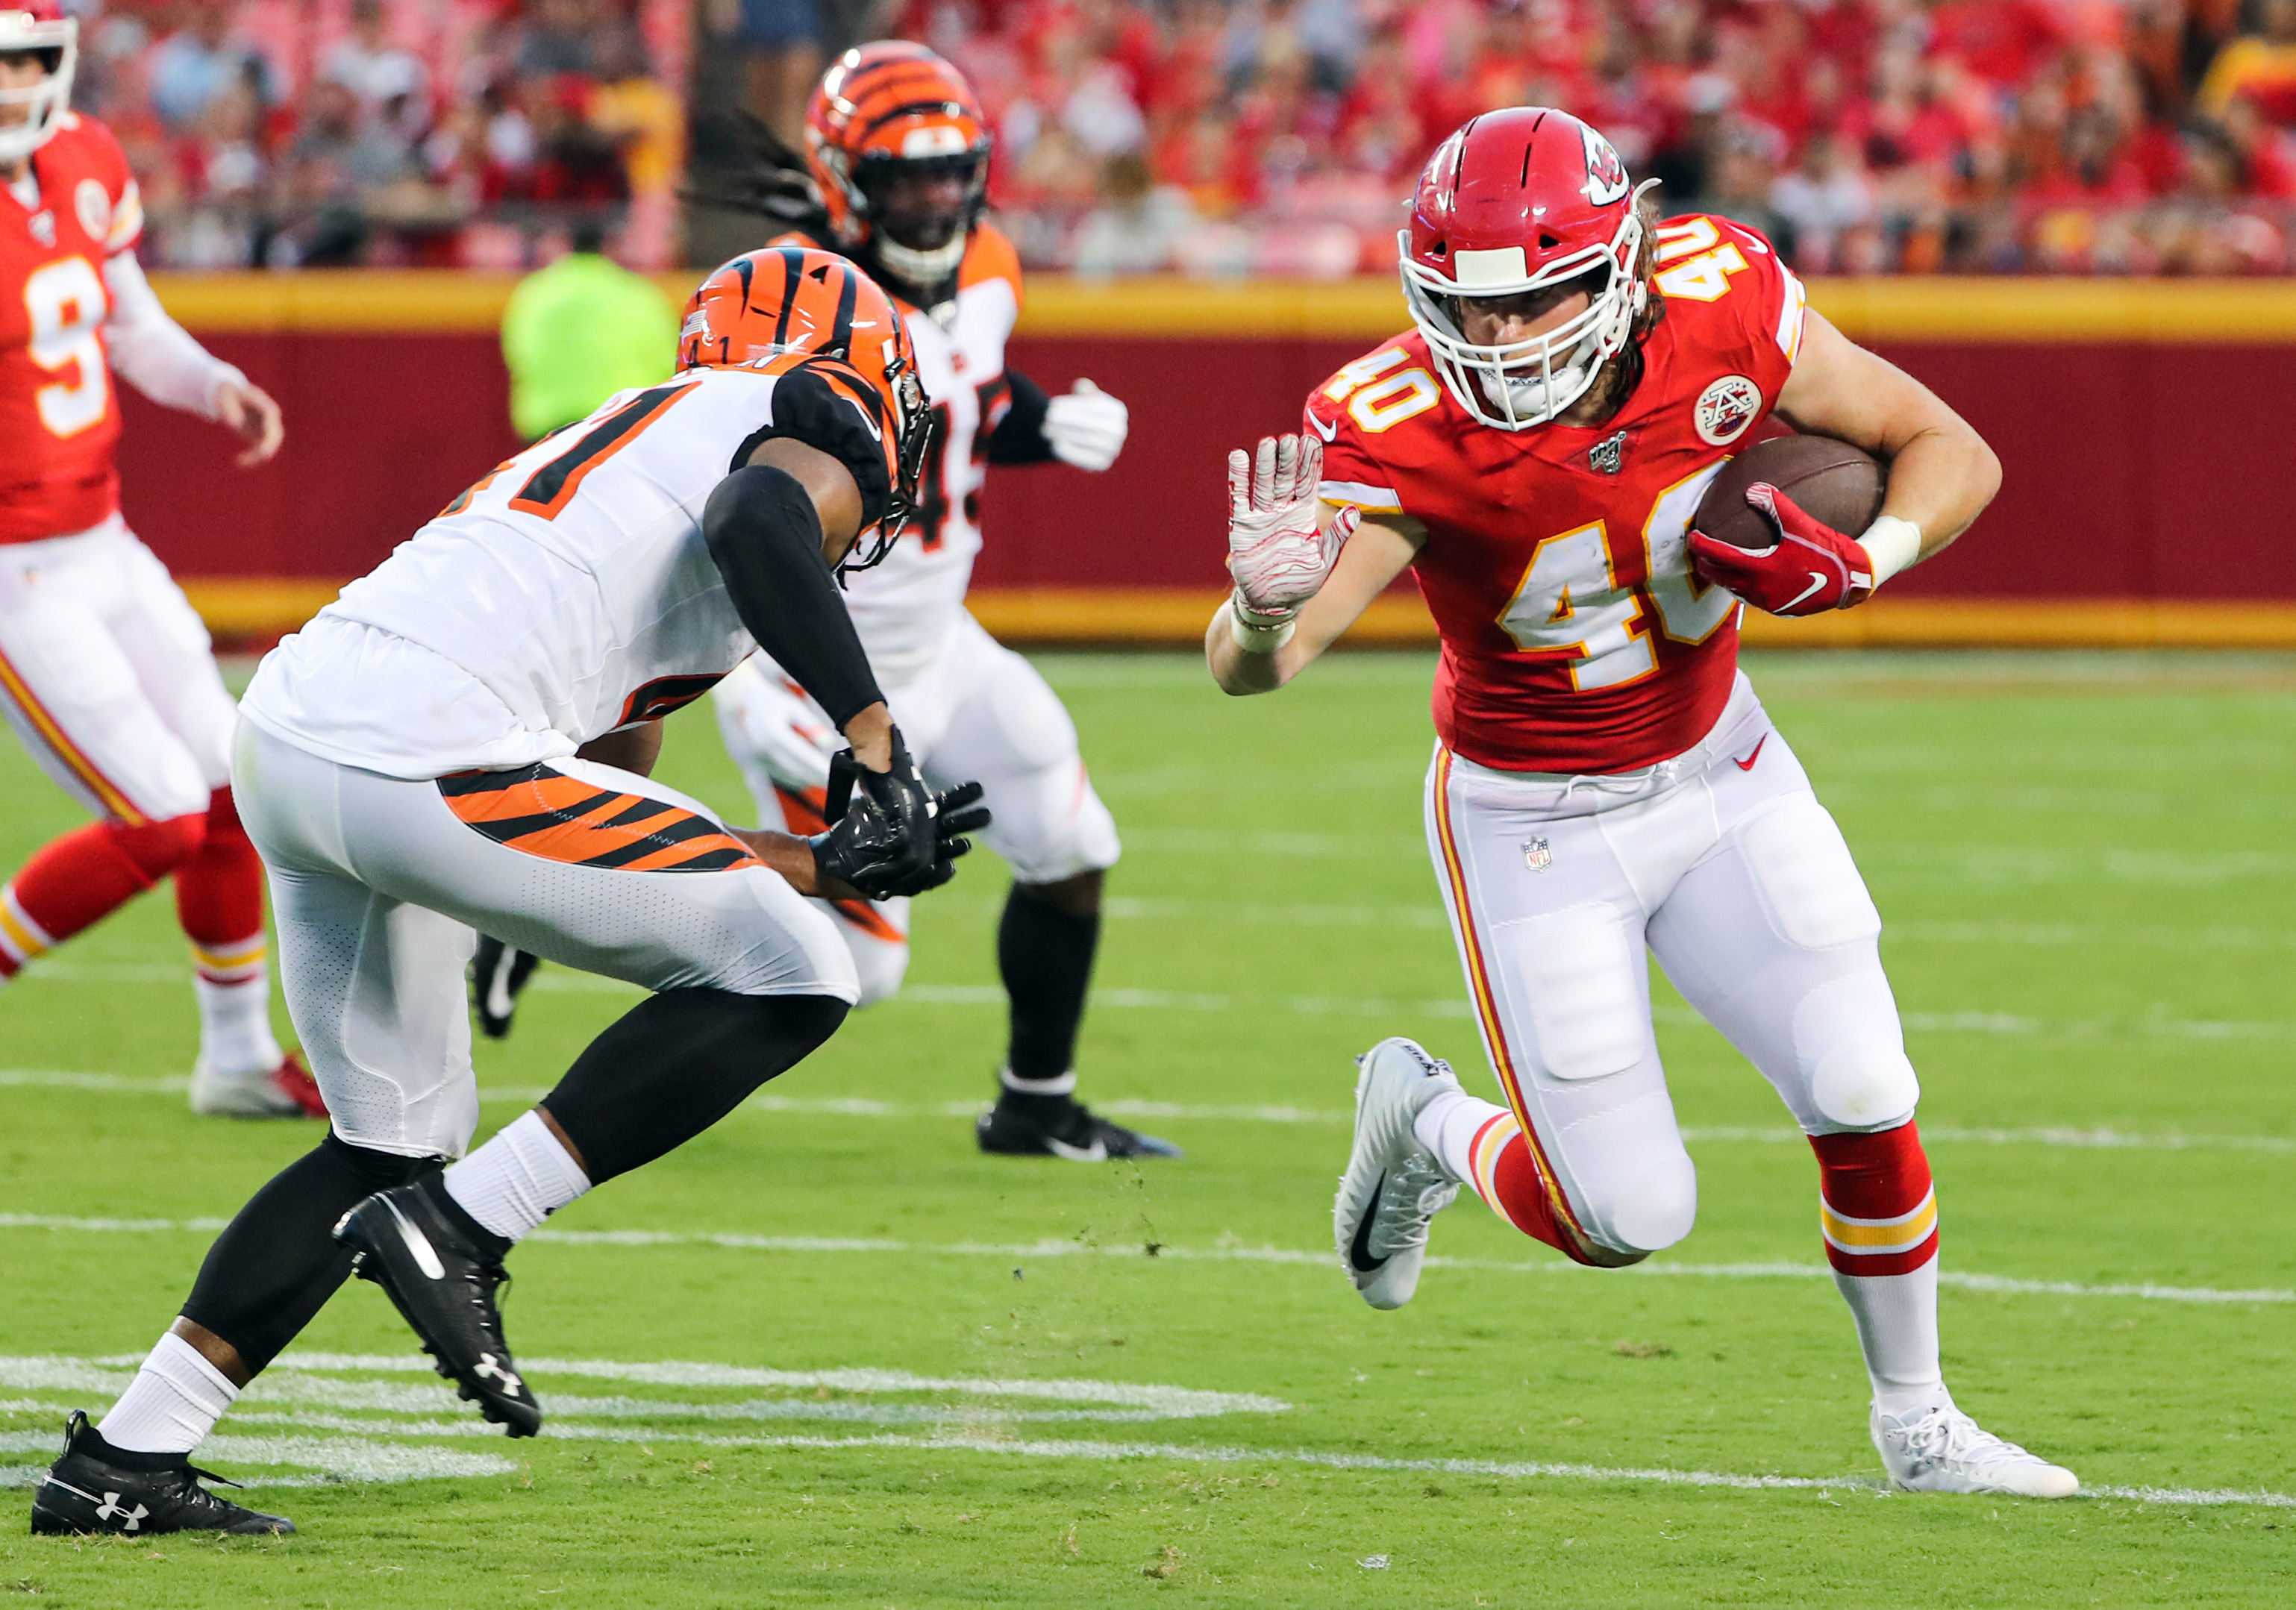 NFL: Preseason-Cincinnati Bengals at Kansas City Chiefs